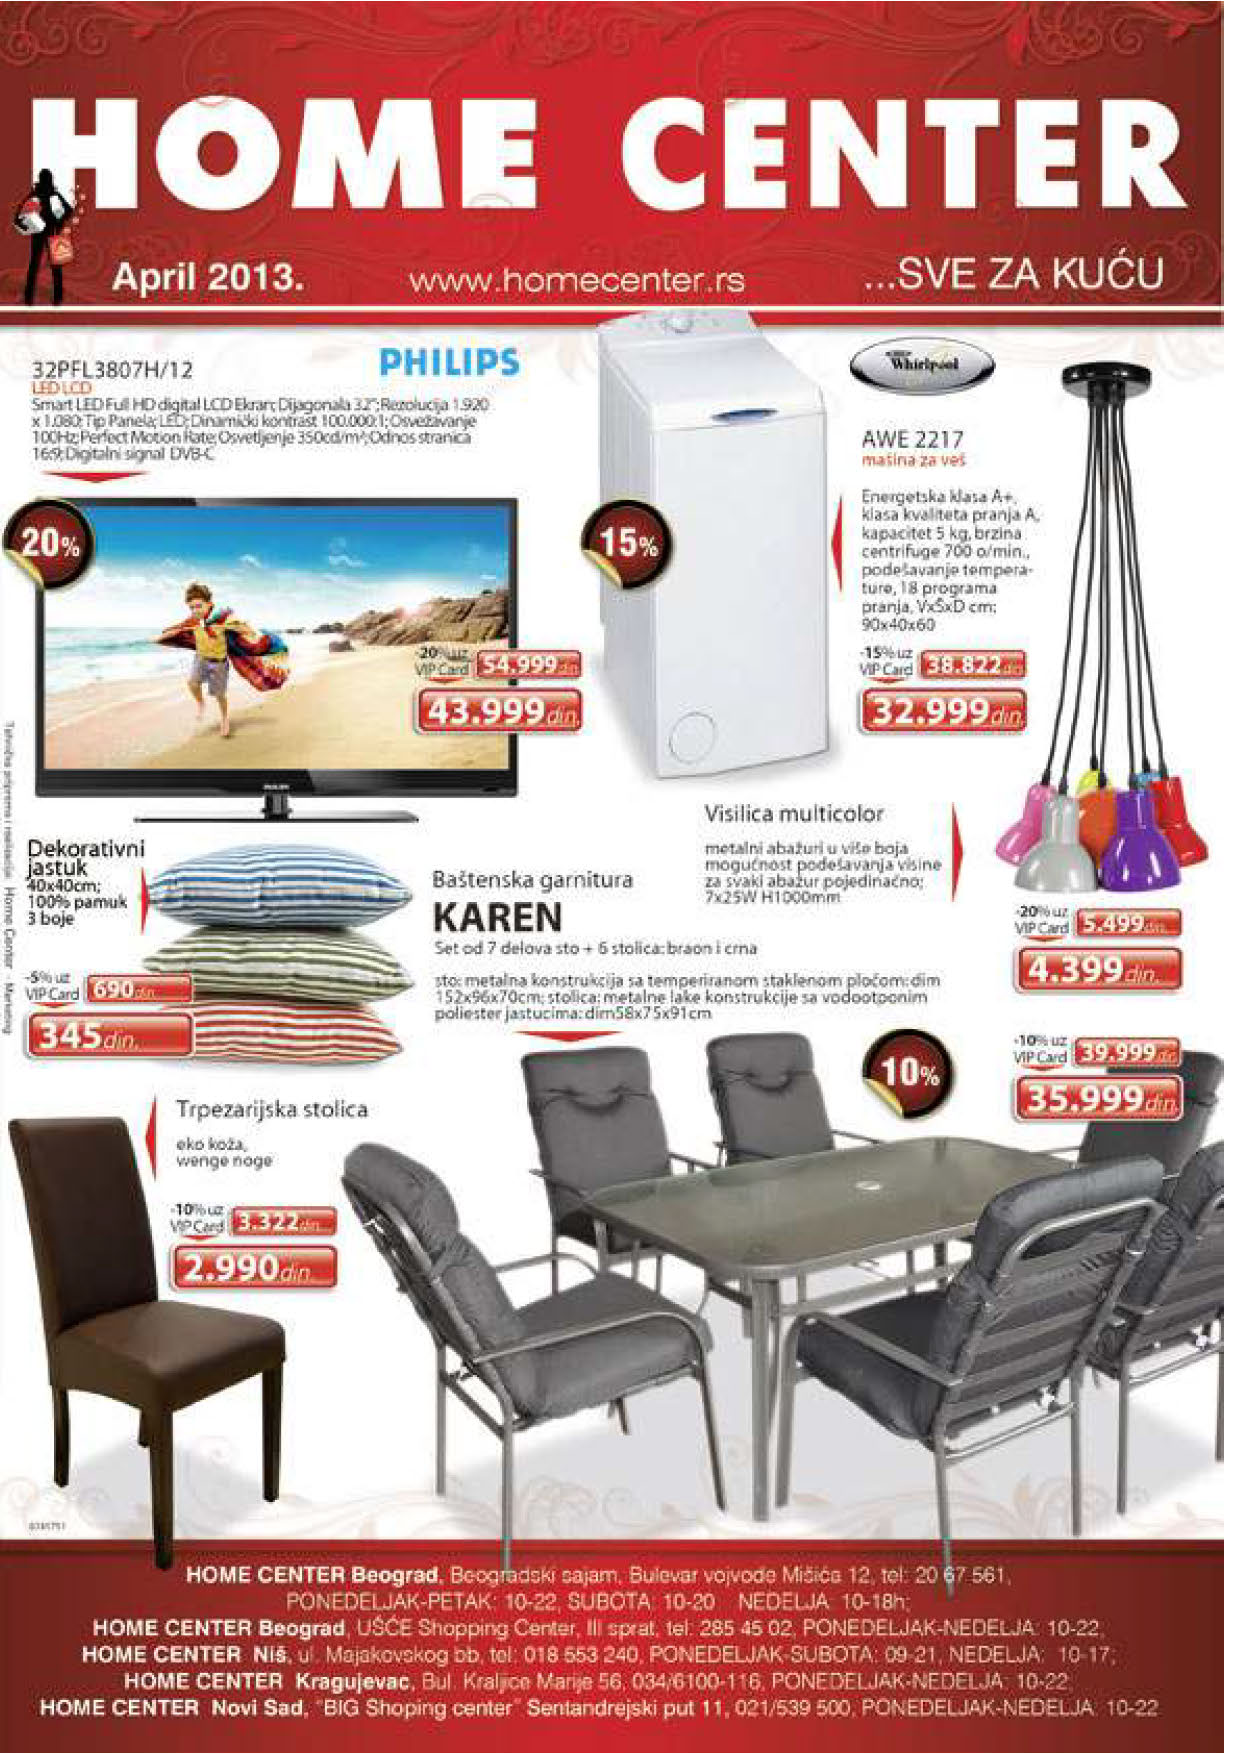 Home Center Katalog Sve za kuću